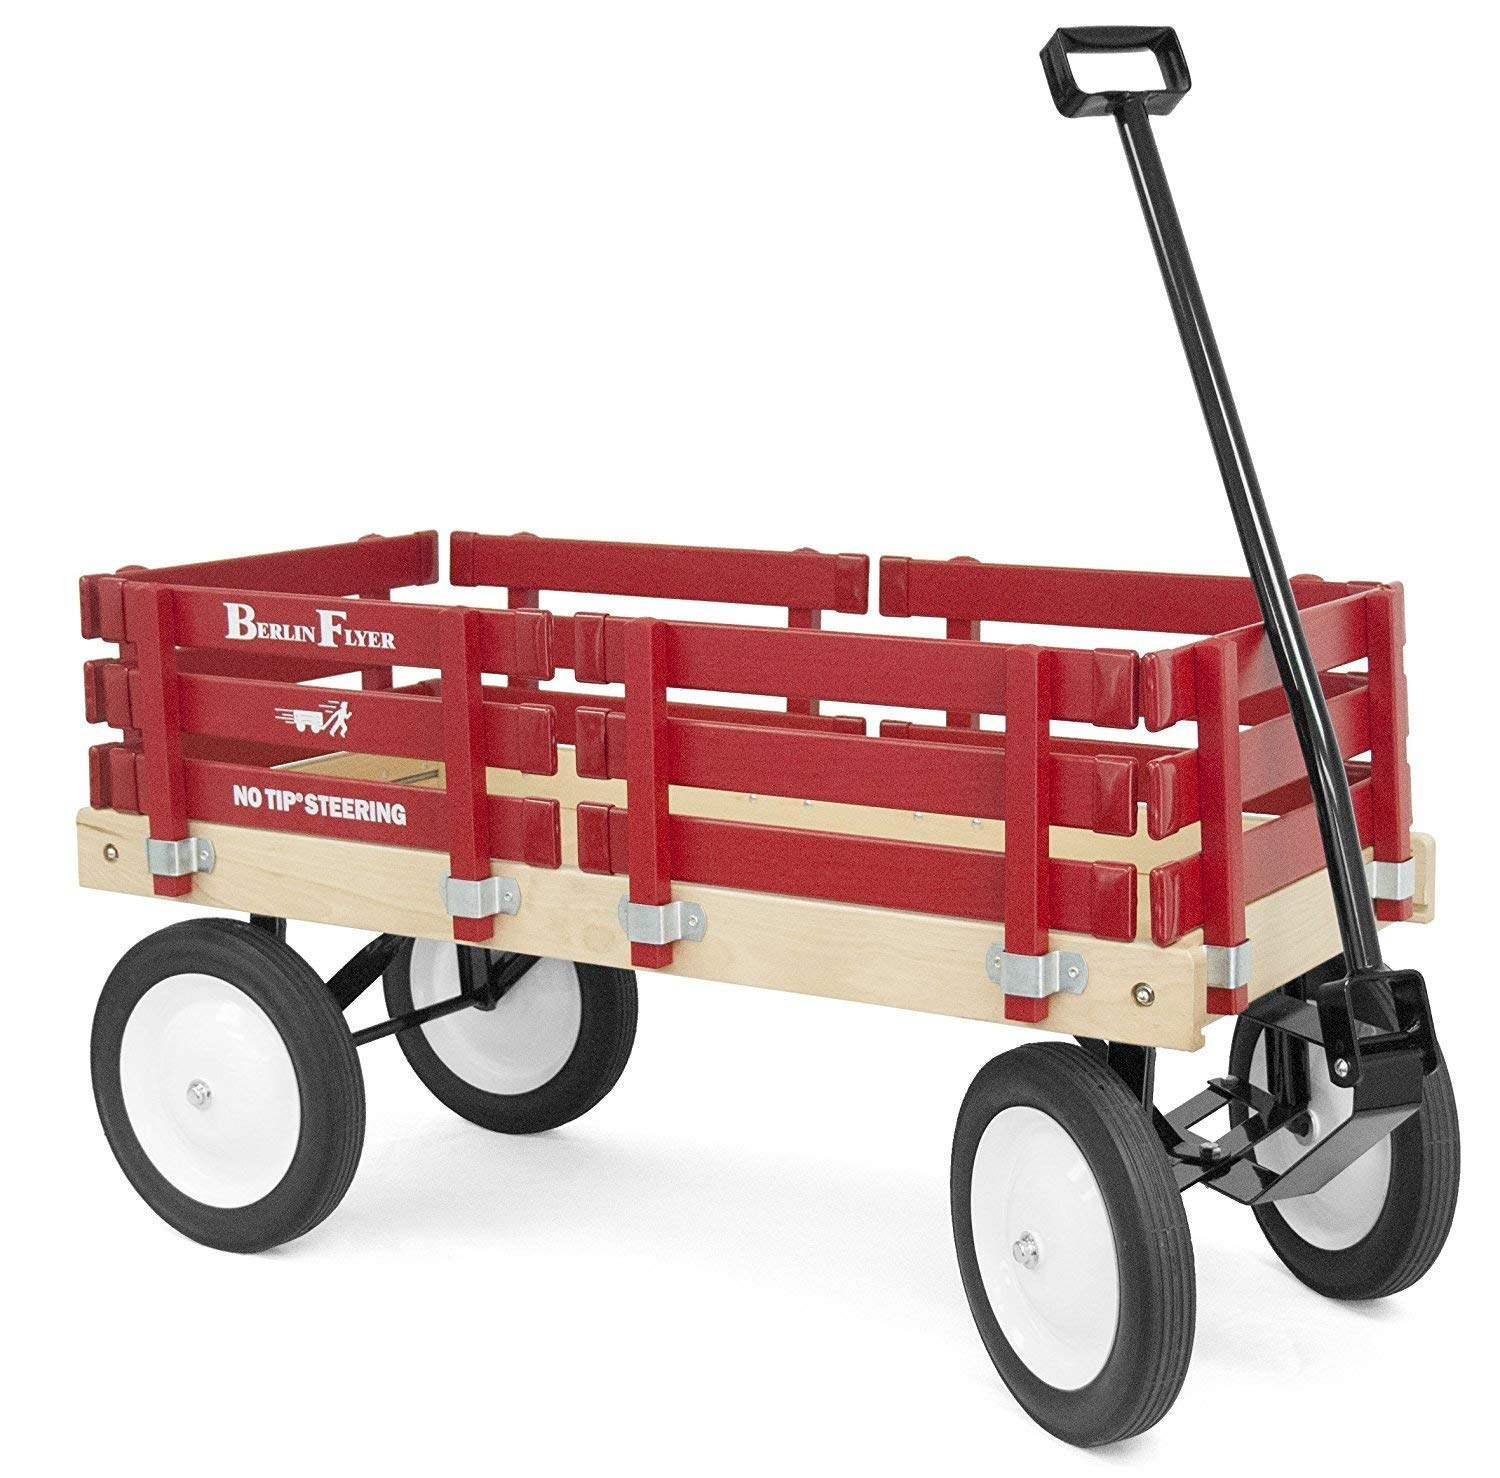 Classic Berlin Flyer Red Wagon for Kids Amish Made in the USA Hardwood Reinforced Steel Body Rubber Tires No Pinch Handle No Tip Steering F310 SS Model